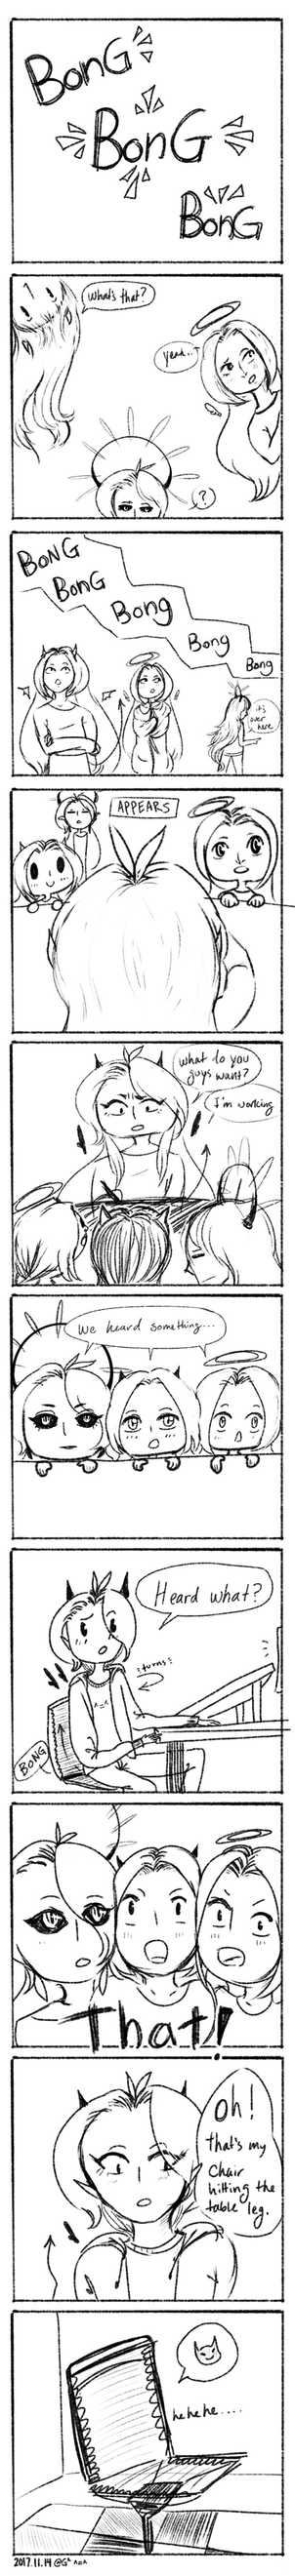 My Daily Do's Comic Test by Shampoo-chan13